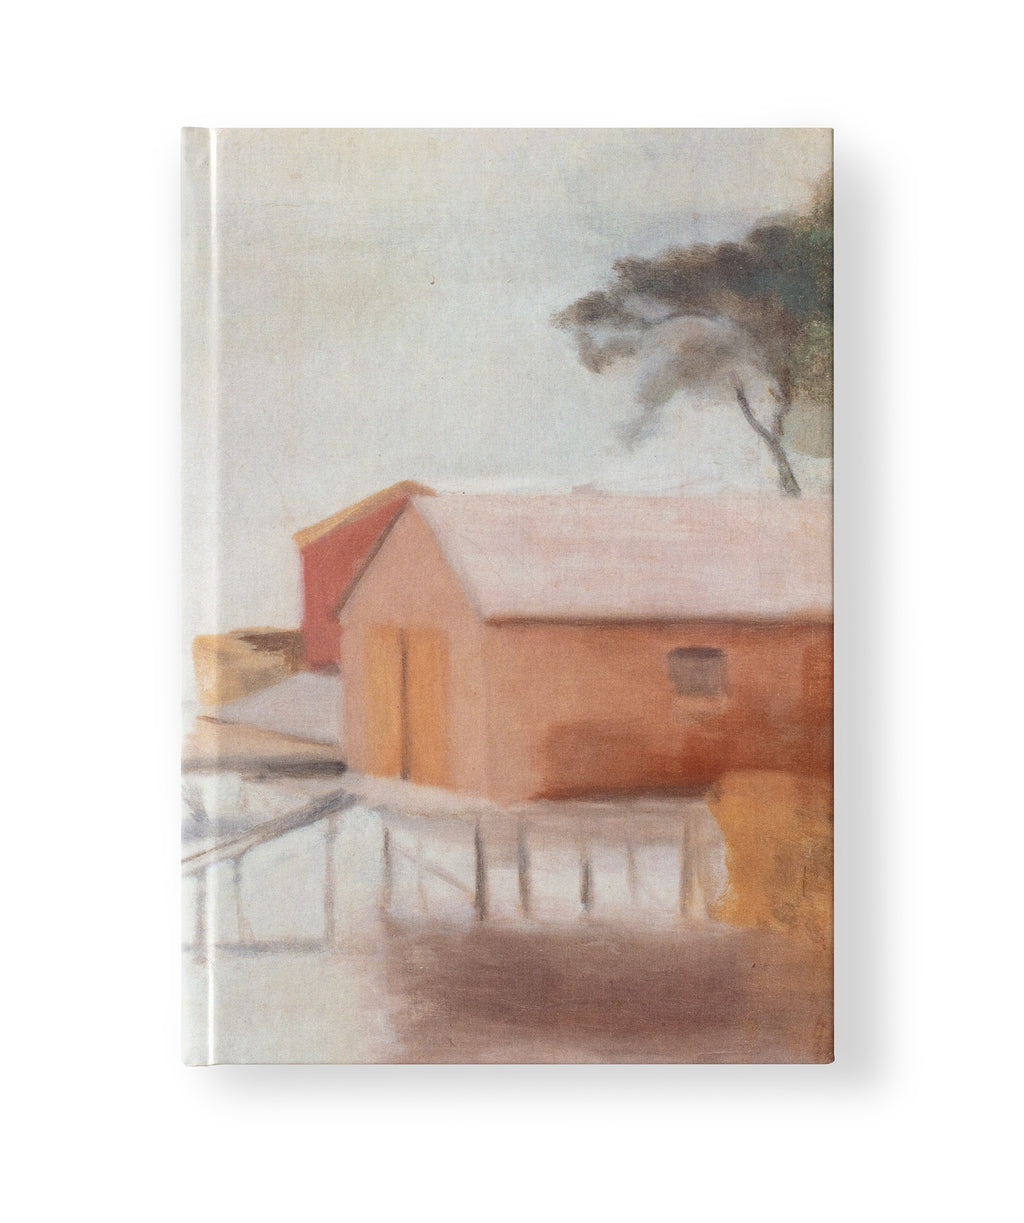 Clarice Beckett Hardcover A5 Notebook 'The boatshed'